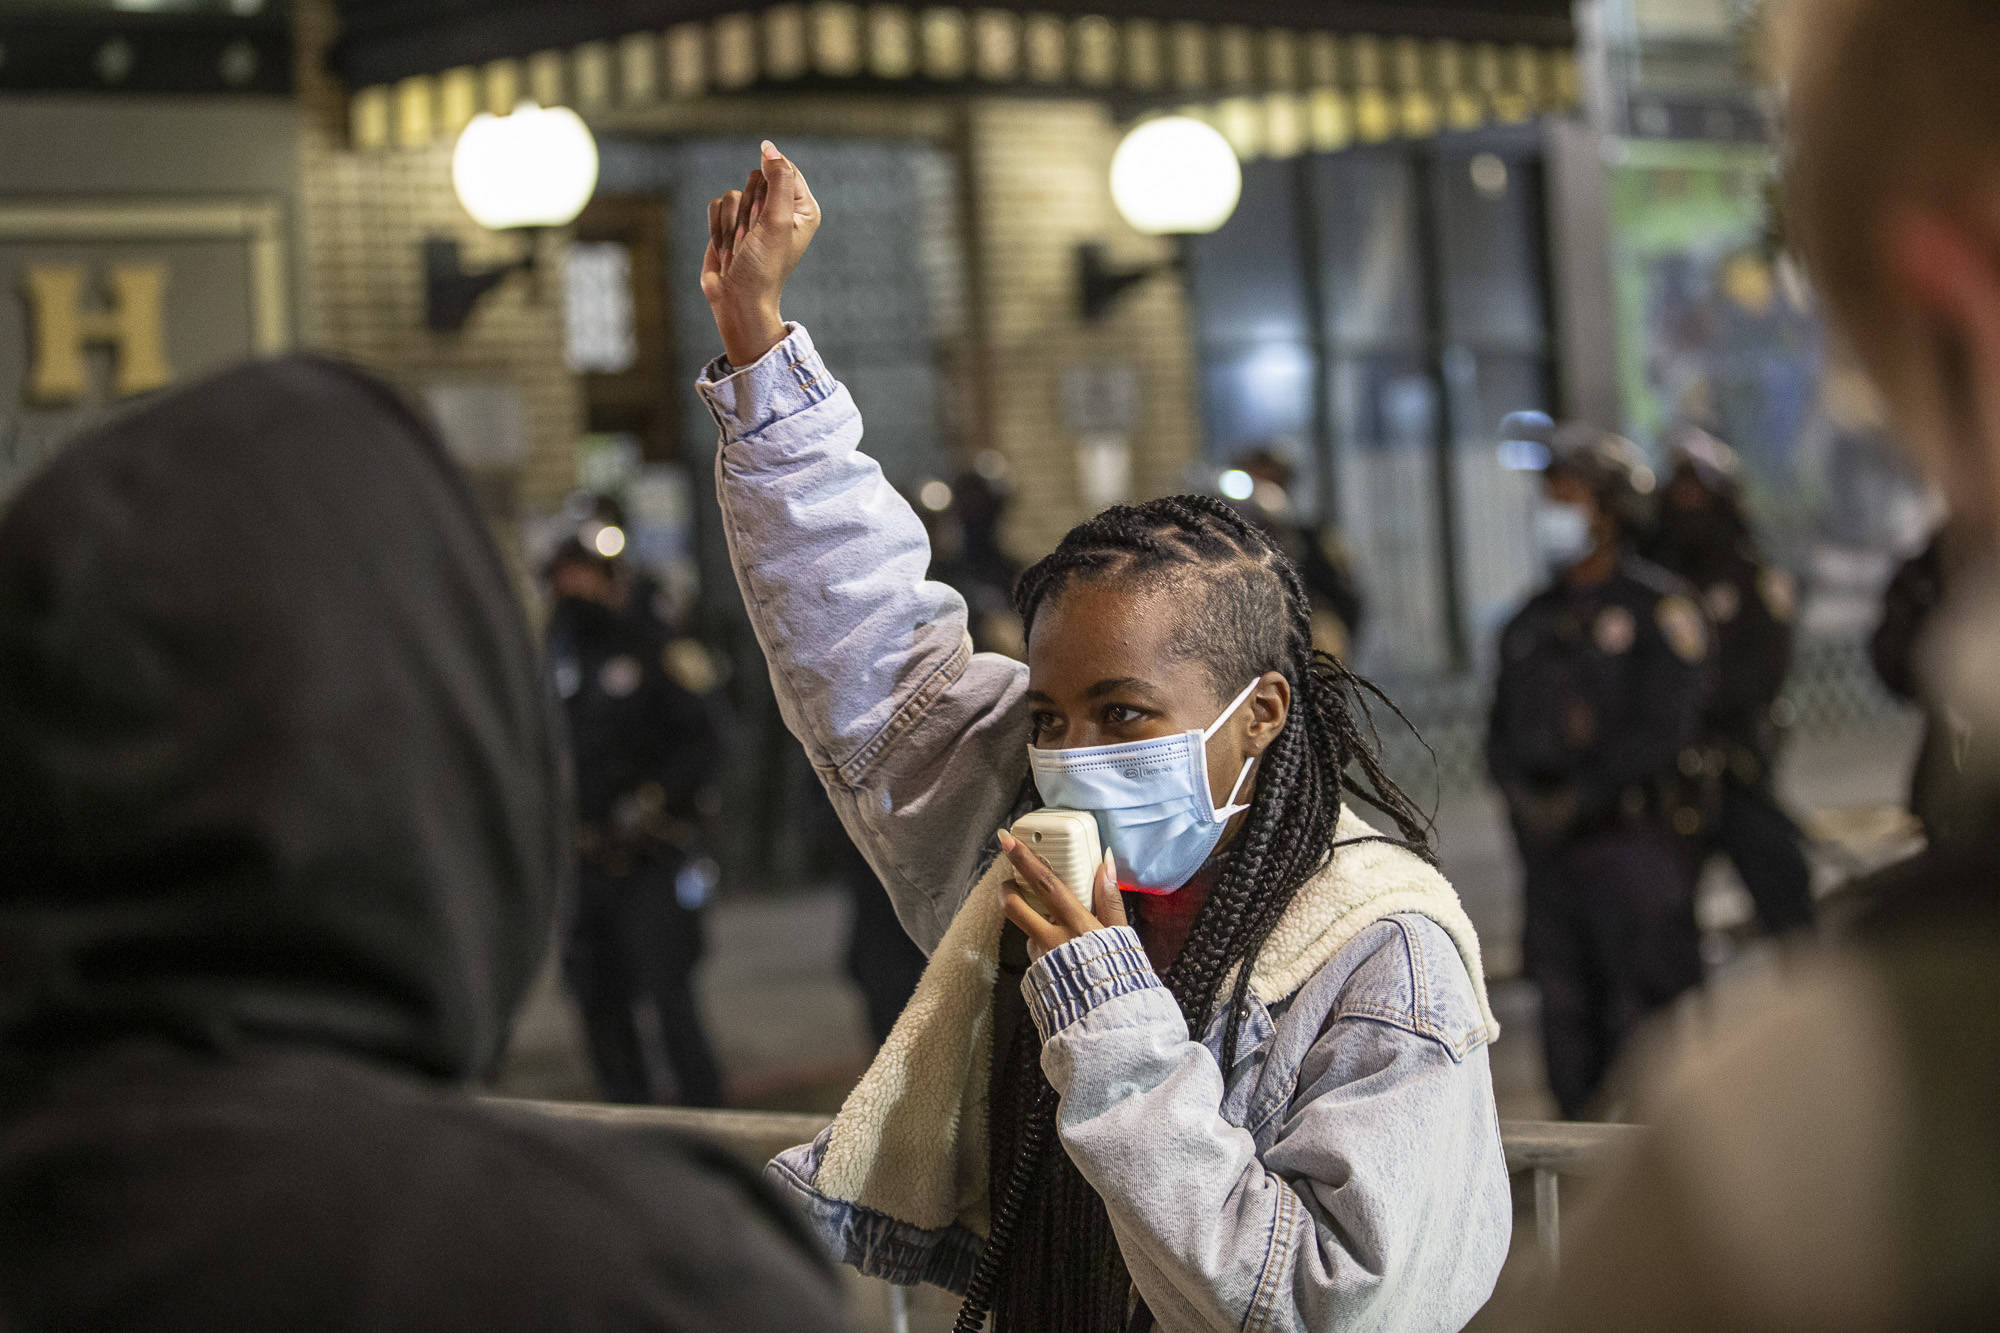 Alex Kamir (center) rallies protesters after they are met with a police line outside the Tenderloin Police Station Thursday night. (Chris Victorio | Special to the S.F. Examiner).